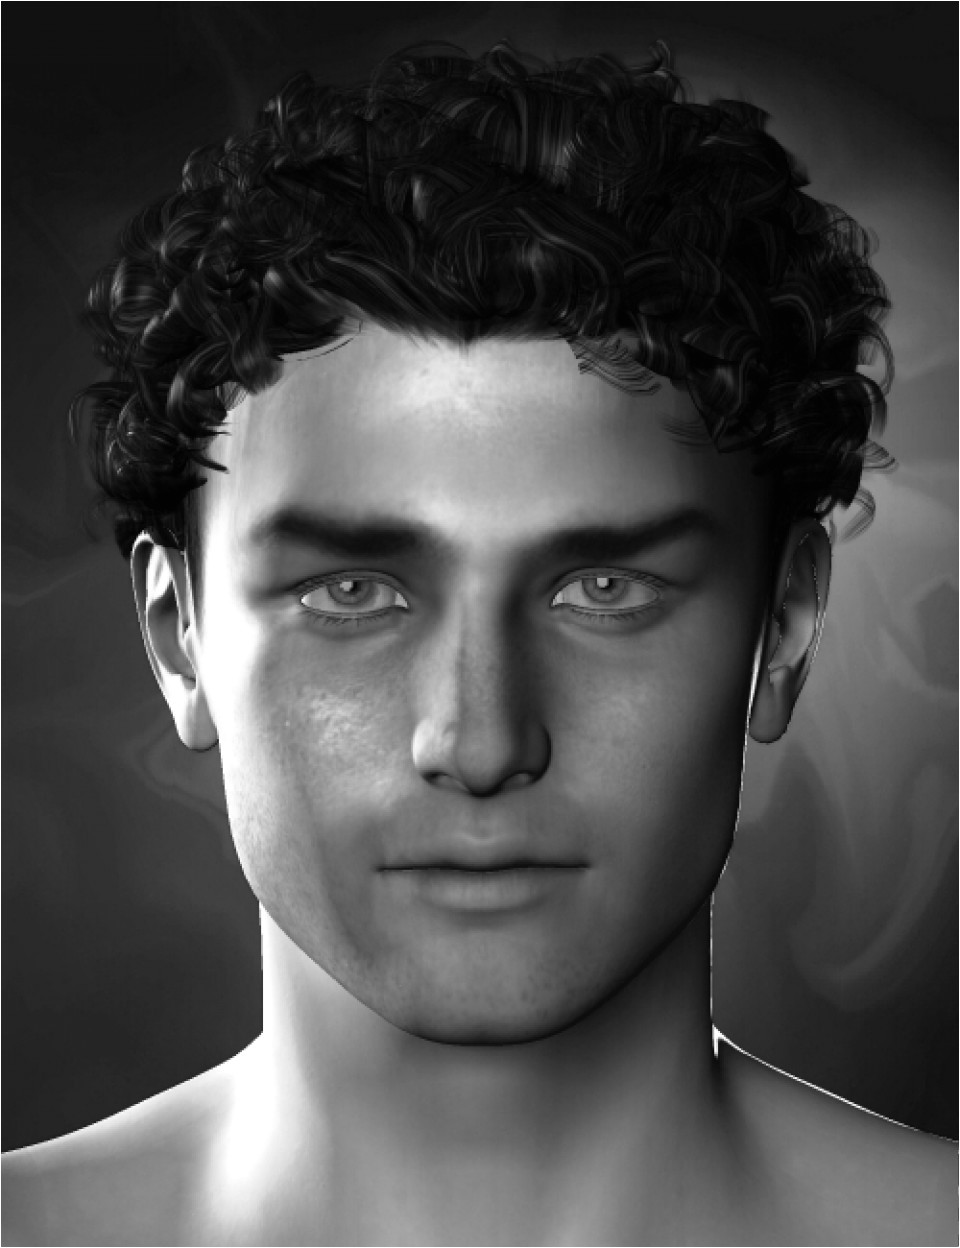 hairstyle software for man uptown boy hairstyle 3d models and 3d softwaredaz 3d